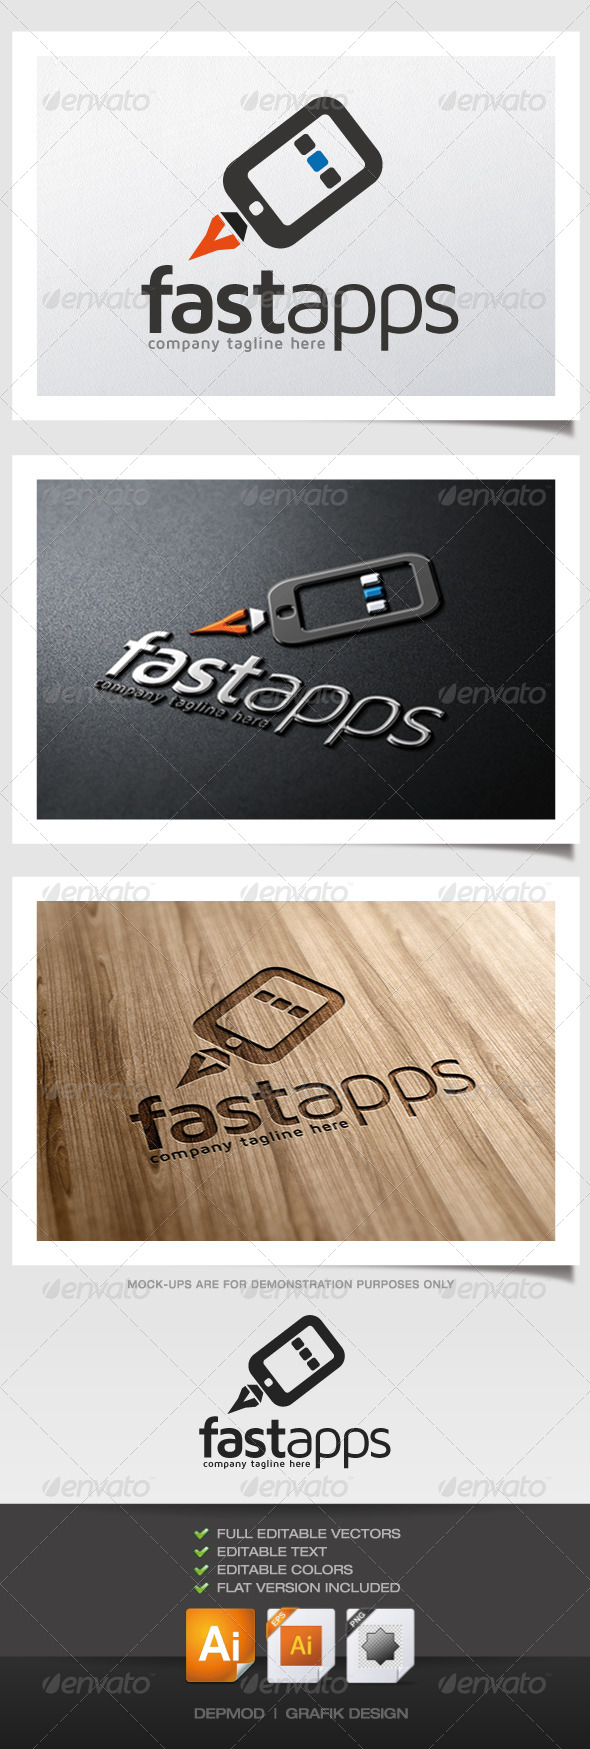 GraphicRiver Fast Apps Logo 5333891